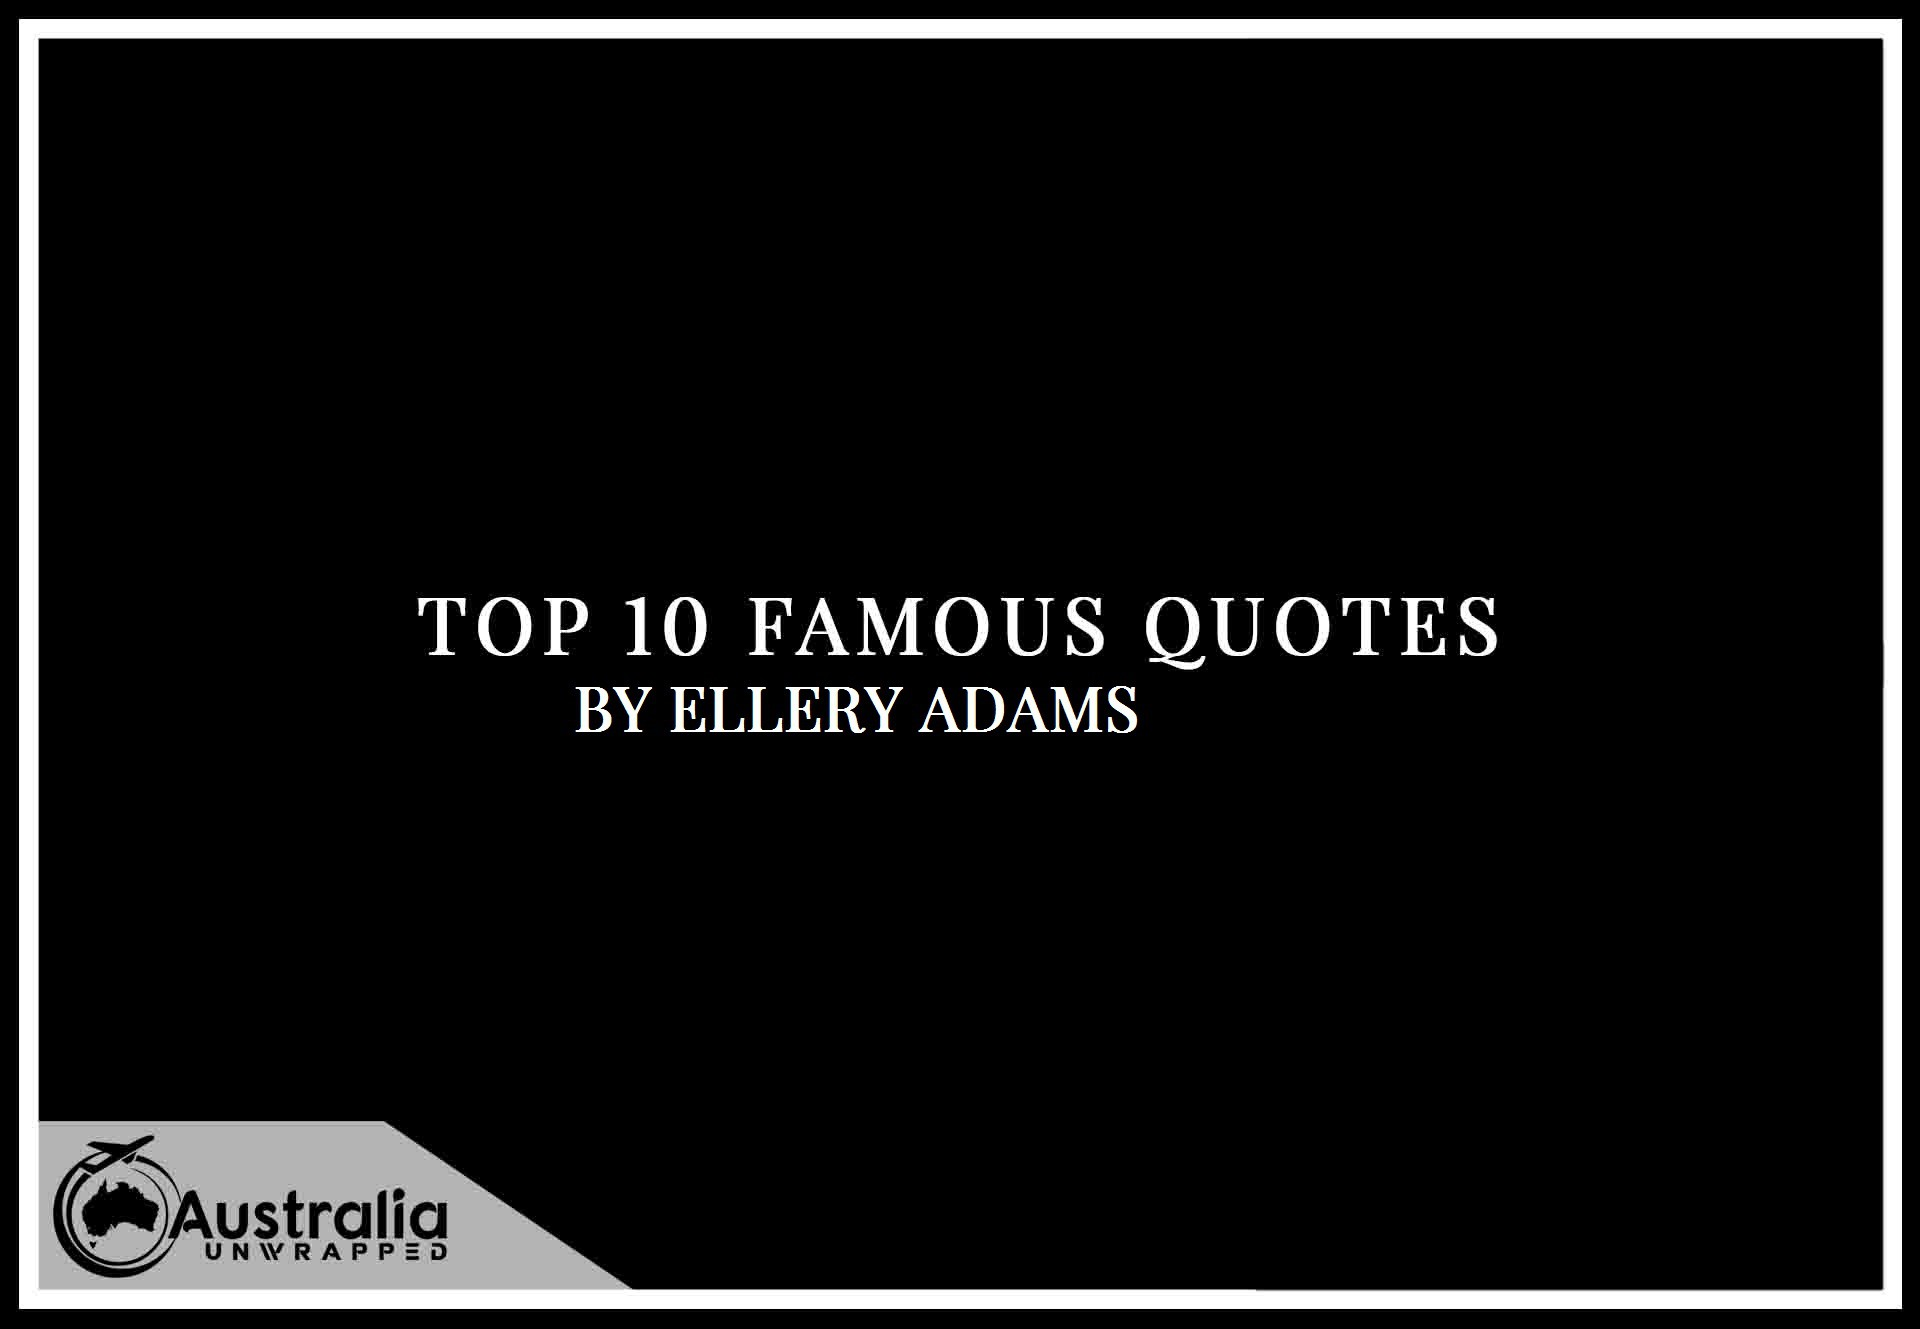 Ellery Adams's Top 10 Popular and Famous Quotes